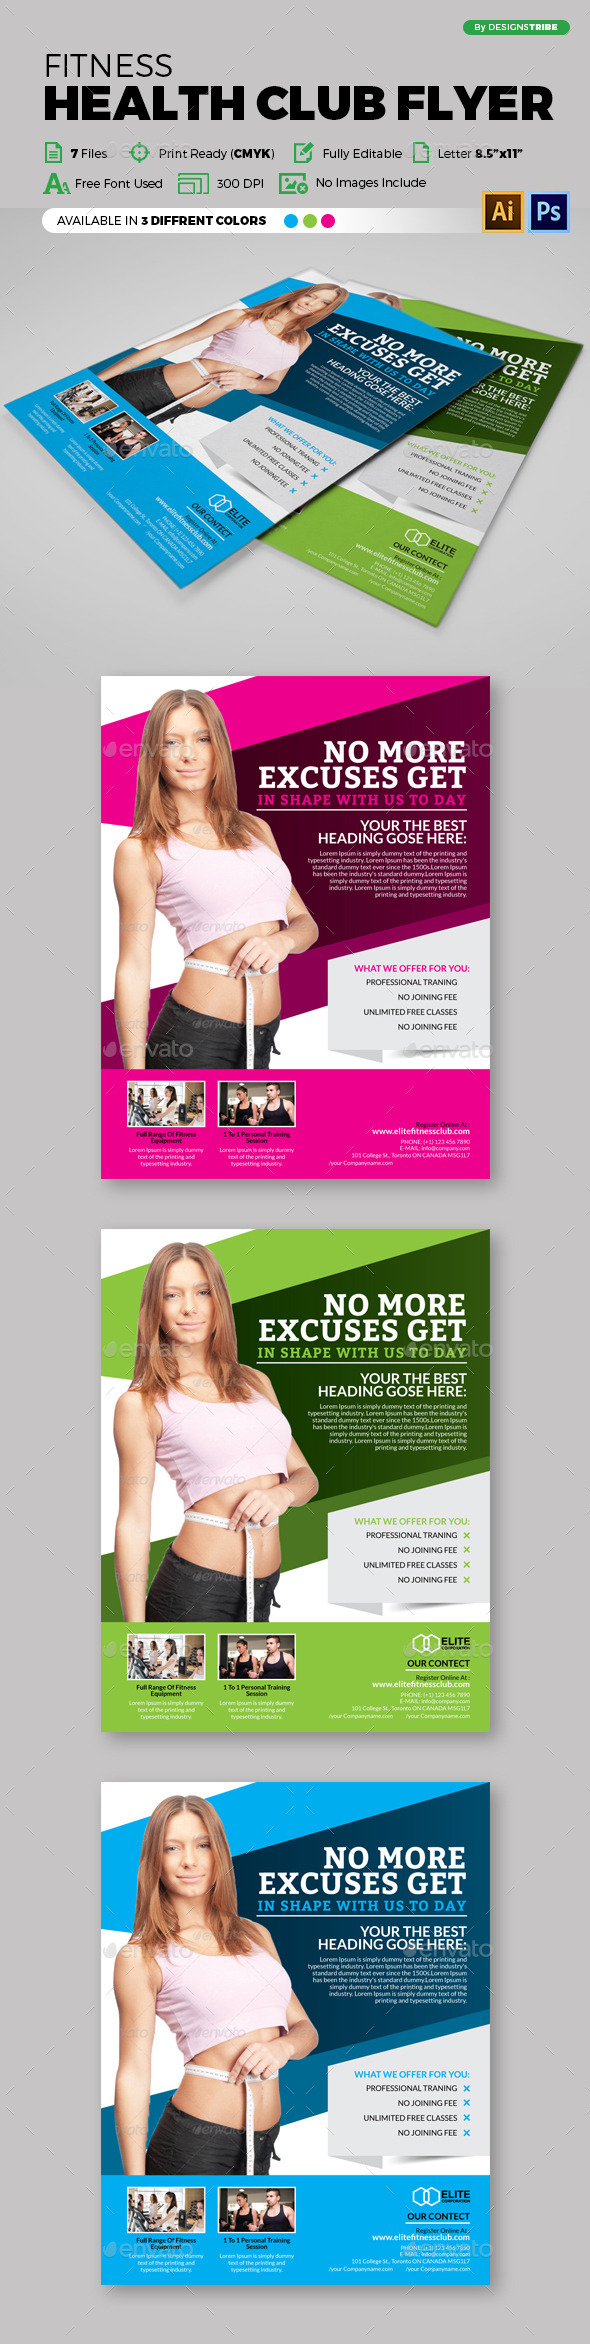 Fitness Health Club Flyer 88 - Flyers Print Templates